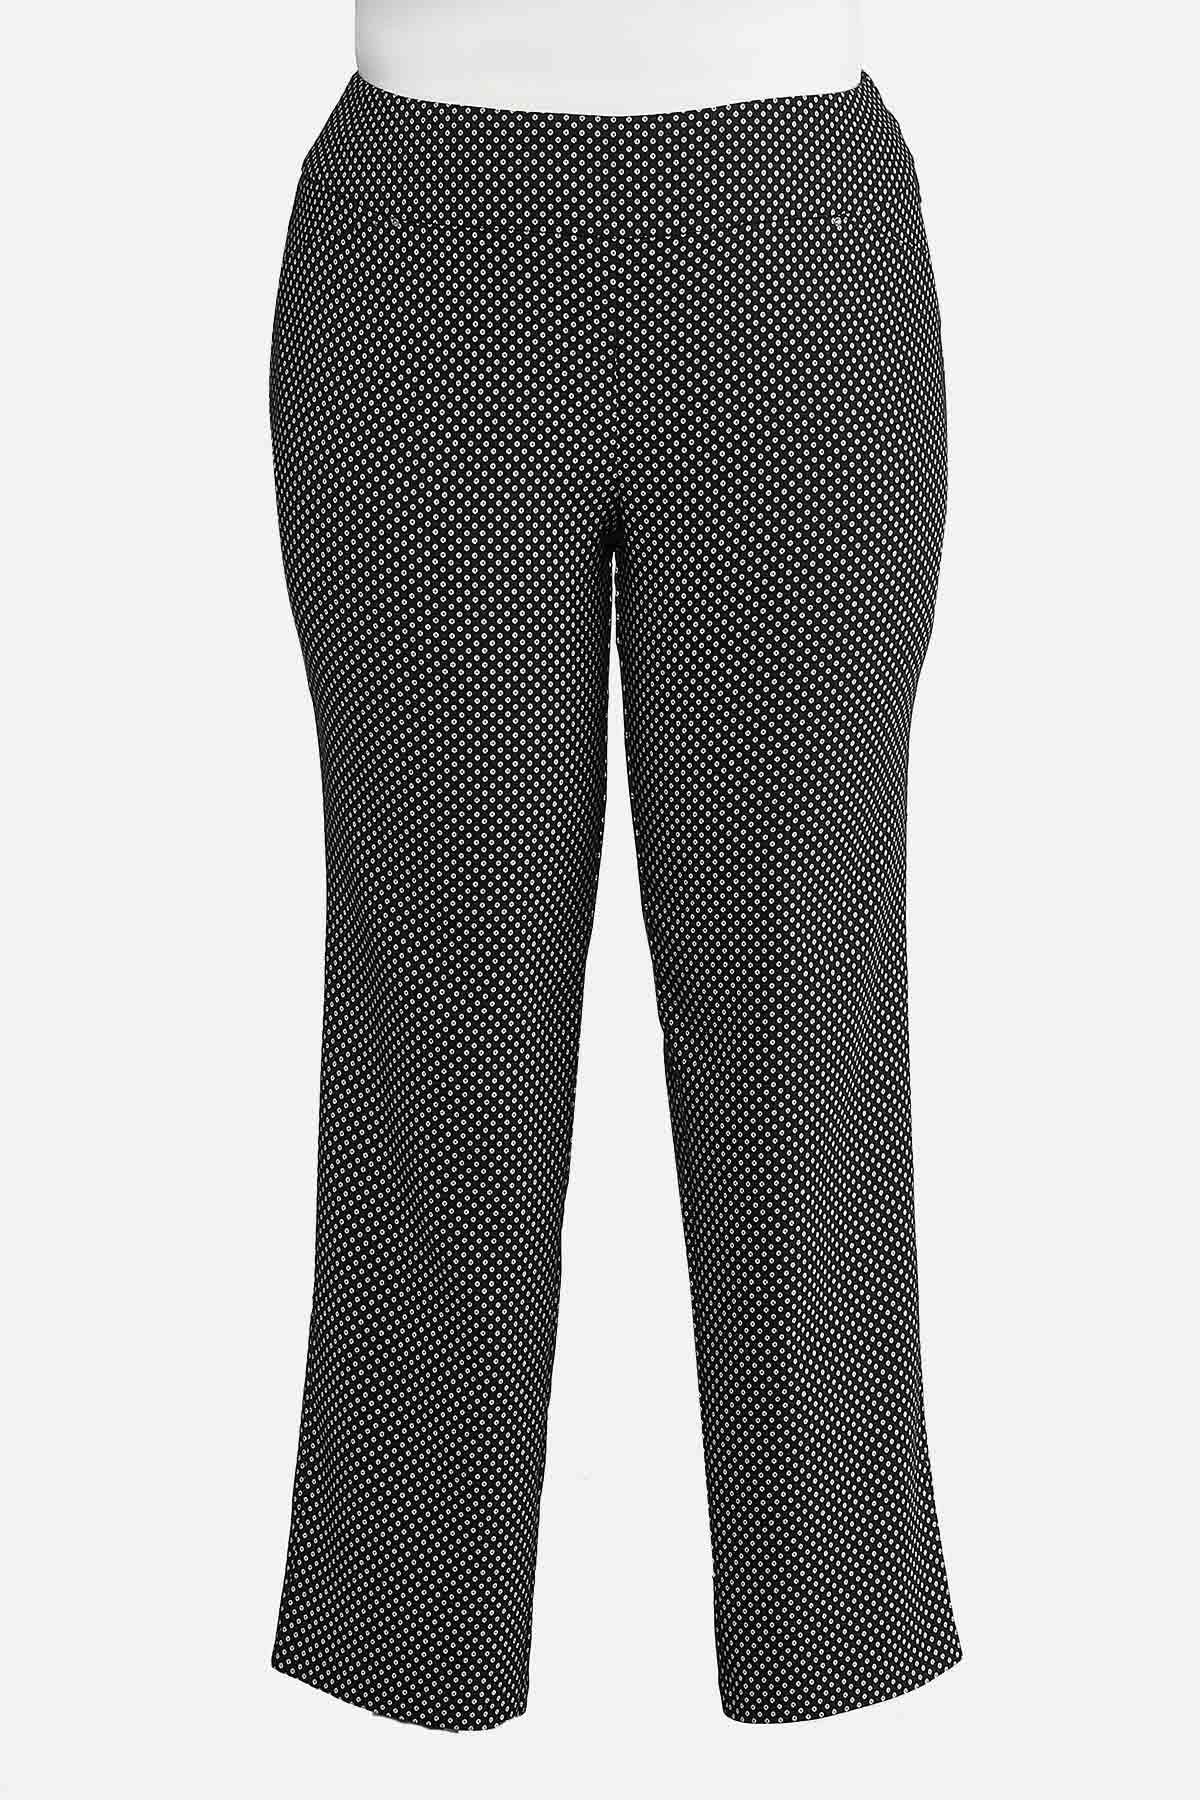 b5deb0f77a8 Plus Size Dotted Pull-On Trousers Pants Cato Fashions